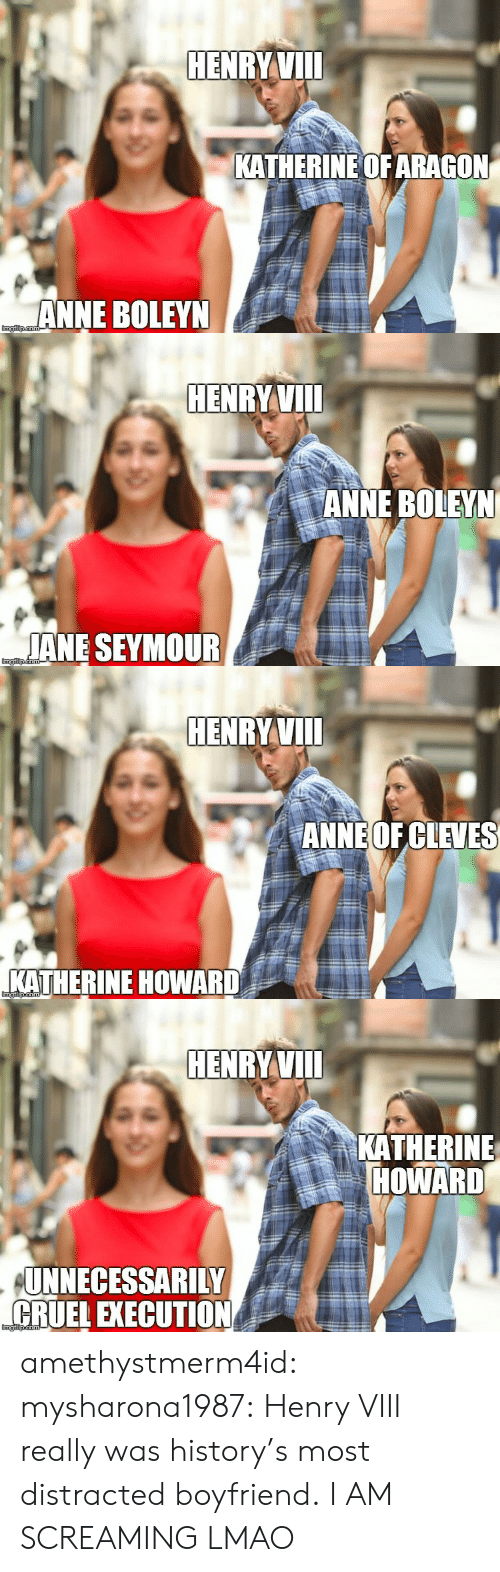 Distracted Boyfriend: HENRY VIIl  KATHERINEOFARAGON  ANNE BOLEYN   HENRY VIIl  ANNE BOLEYN  JANE SEYMOUR   HENRY VIIl  ANNE OFCLEVES  KATHERINE HOWARD   HENRYVIl  KATHERINE  HOWARD  UNNECESSARILY  CRUEL EXECUTION amethystmerm4id: mysharona1987:  Henry VIII really was history's most distracted boyfriend.  I AM SCREAMING LMAO